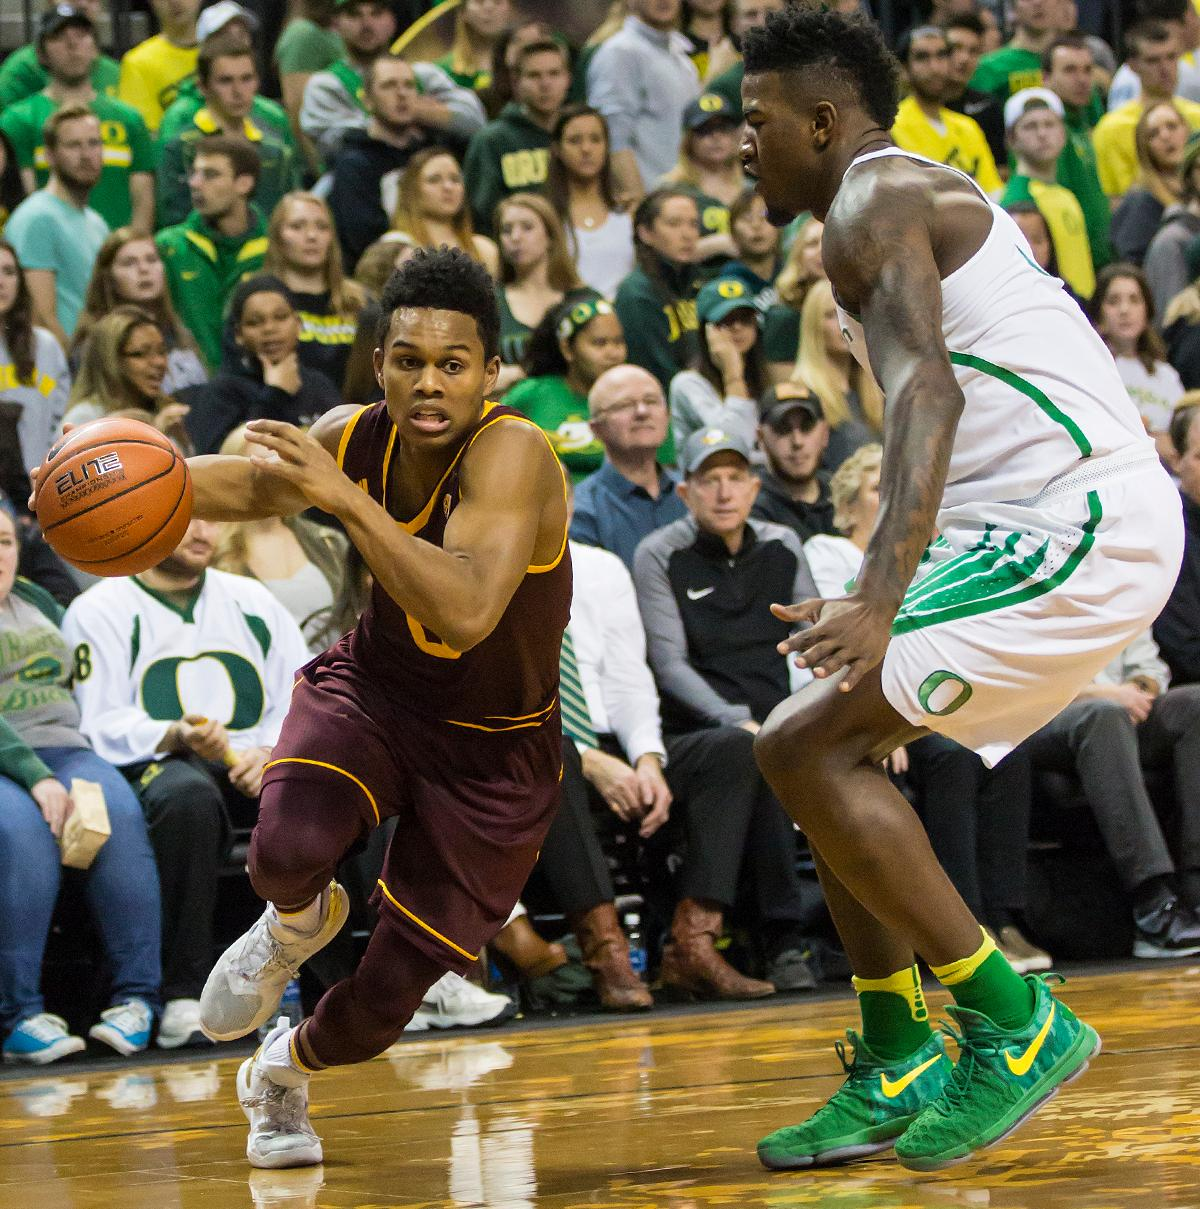 Arizona State guard Tra Holder (#0) dribbles past Oregon forward Jordan Bell (#1). Holder finished the evening with 17 points and 2 rebounds. The Oregon Ducks defeated the Arizona State Sun Devils 71 to 70. Photo by Ben Lonergan, Oregon News Lab